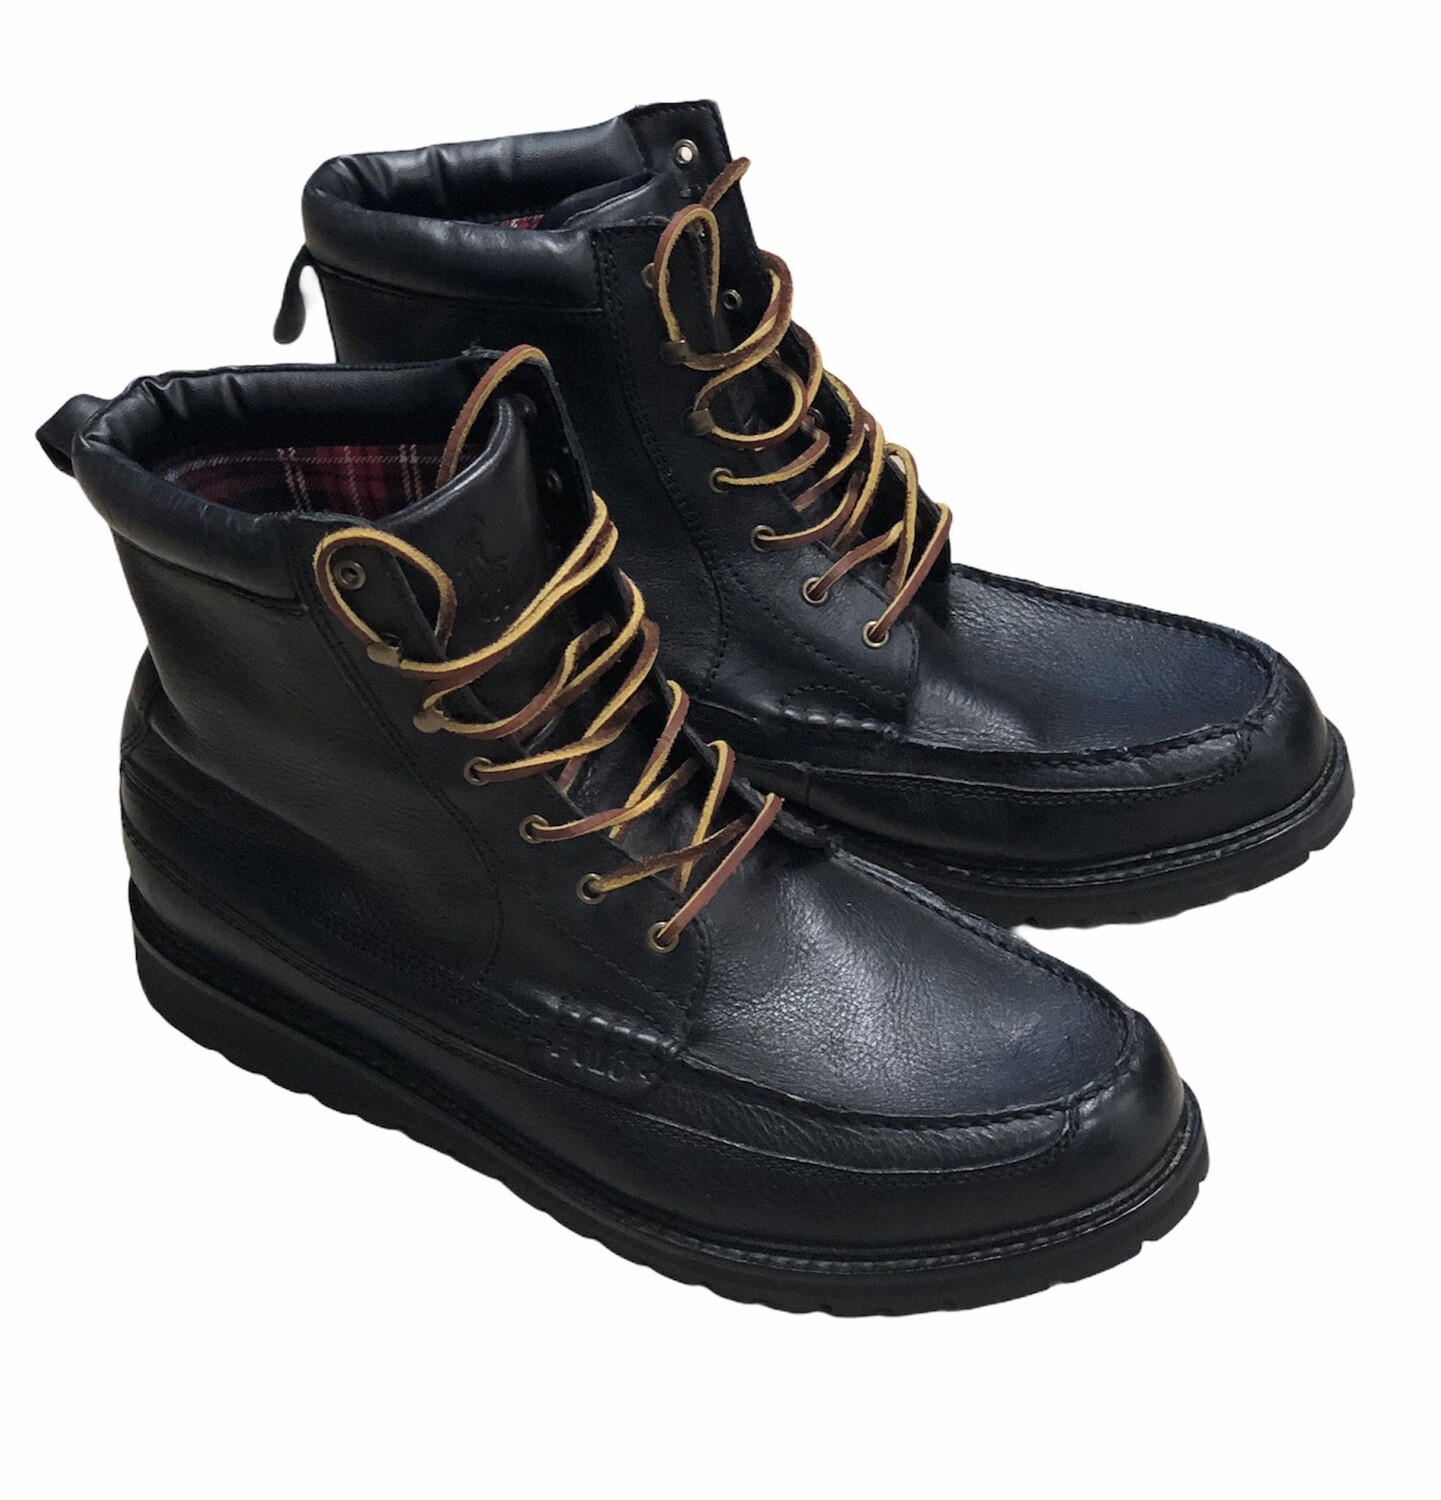 "Mens RALPH LAUREN ""Willingcott"" Black Leather Lace-Up Boots size 15 $169"